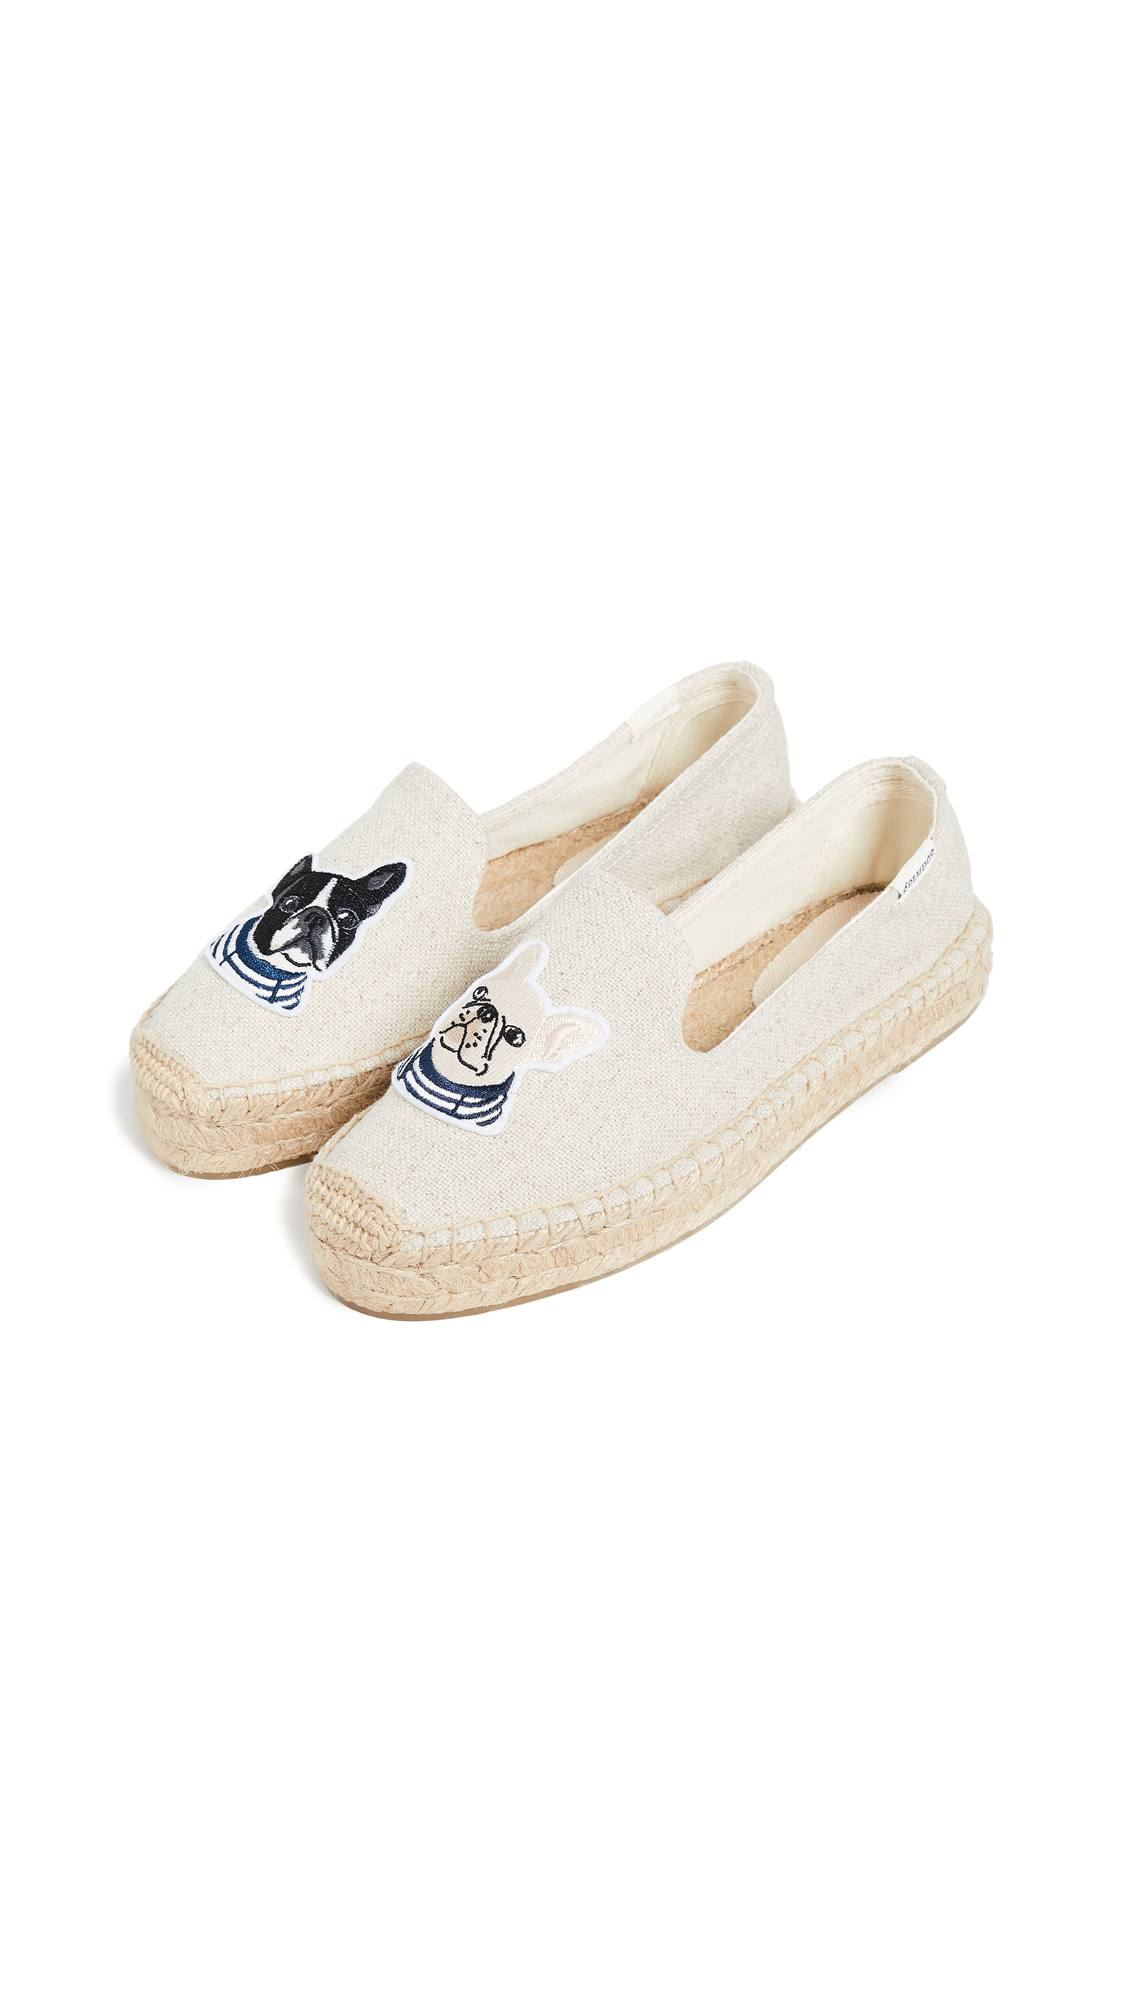 Soludos Teddy & Gigi Smoking Slippers - Sand